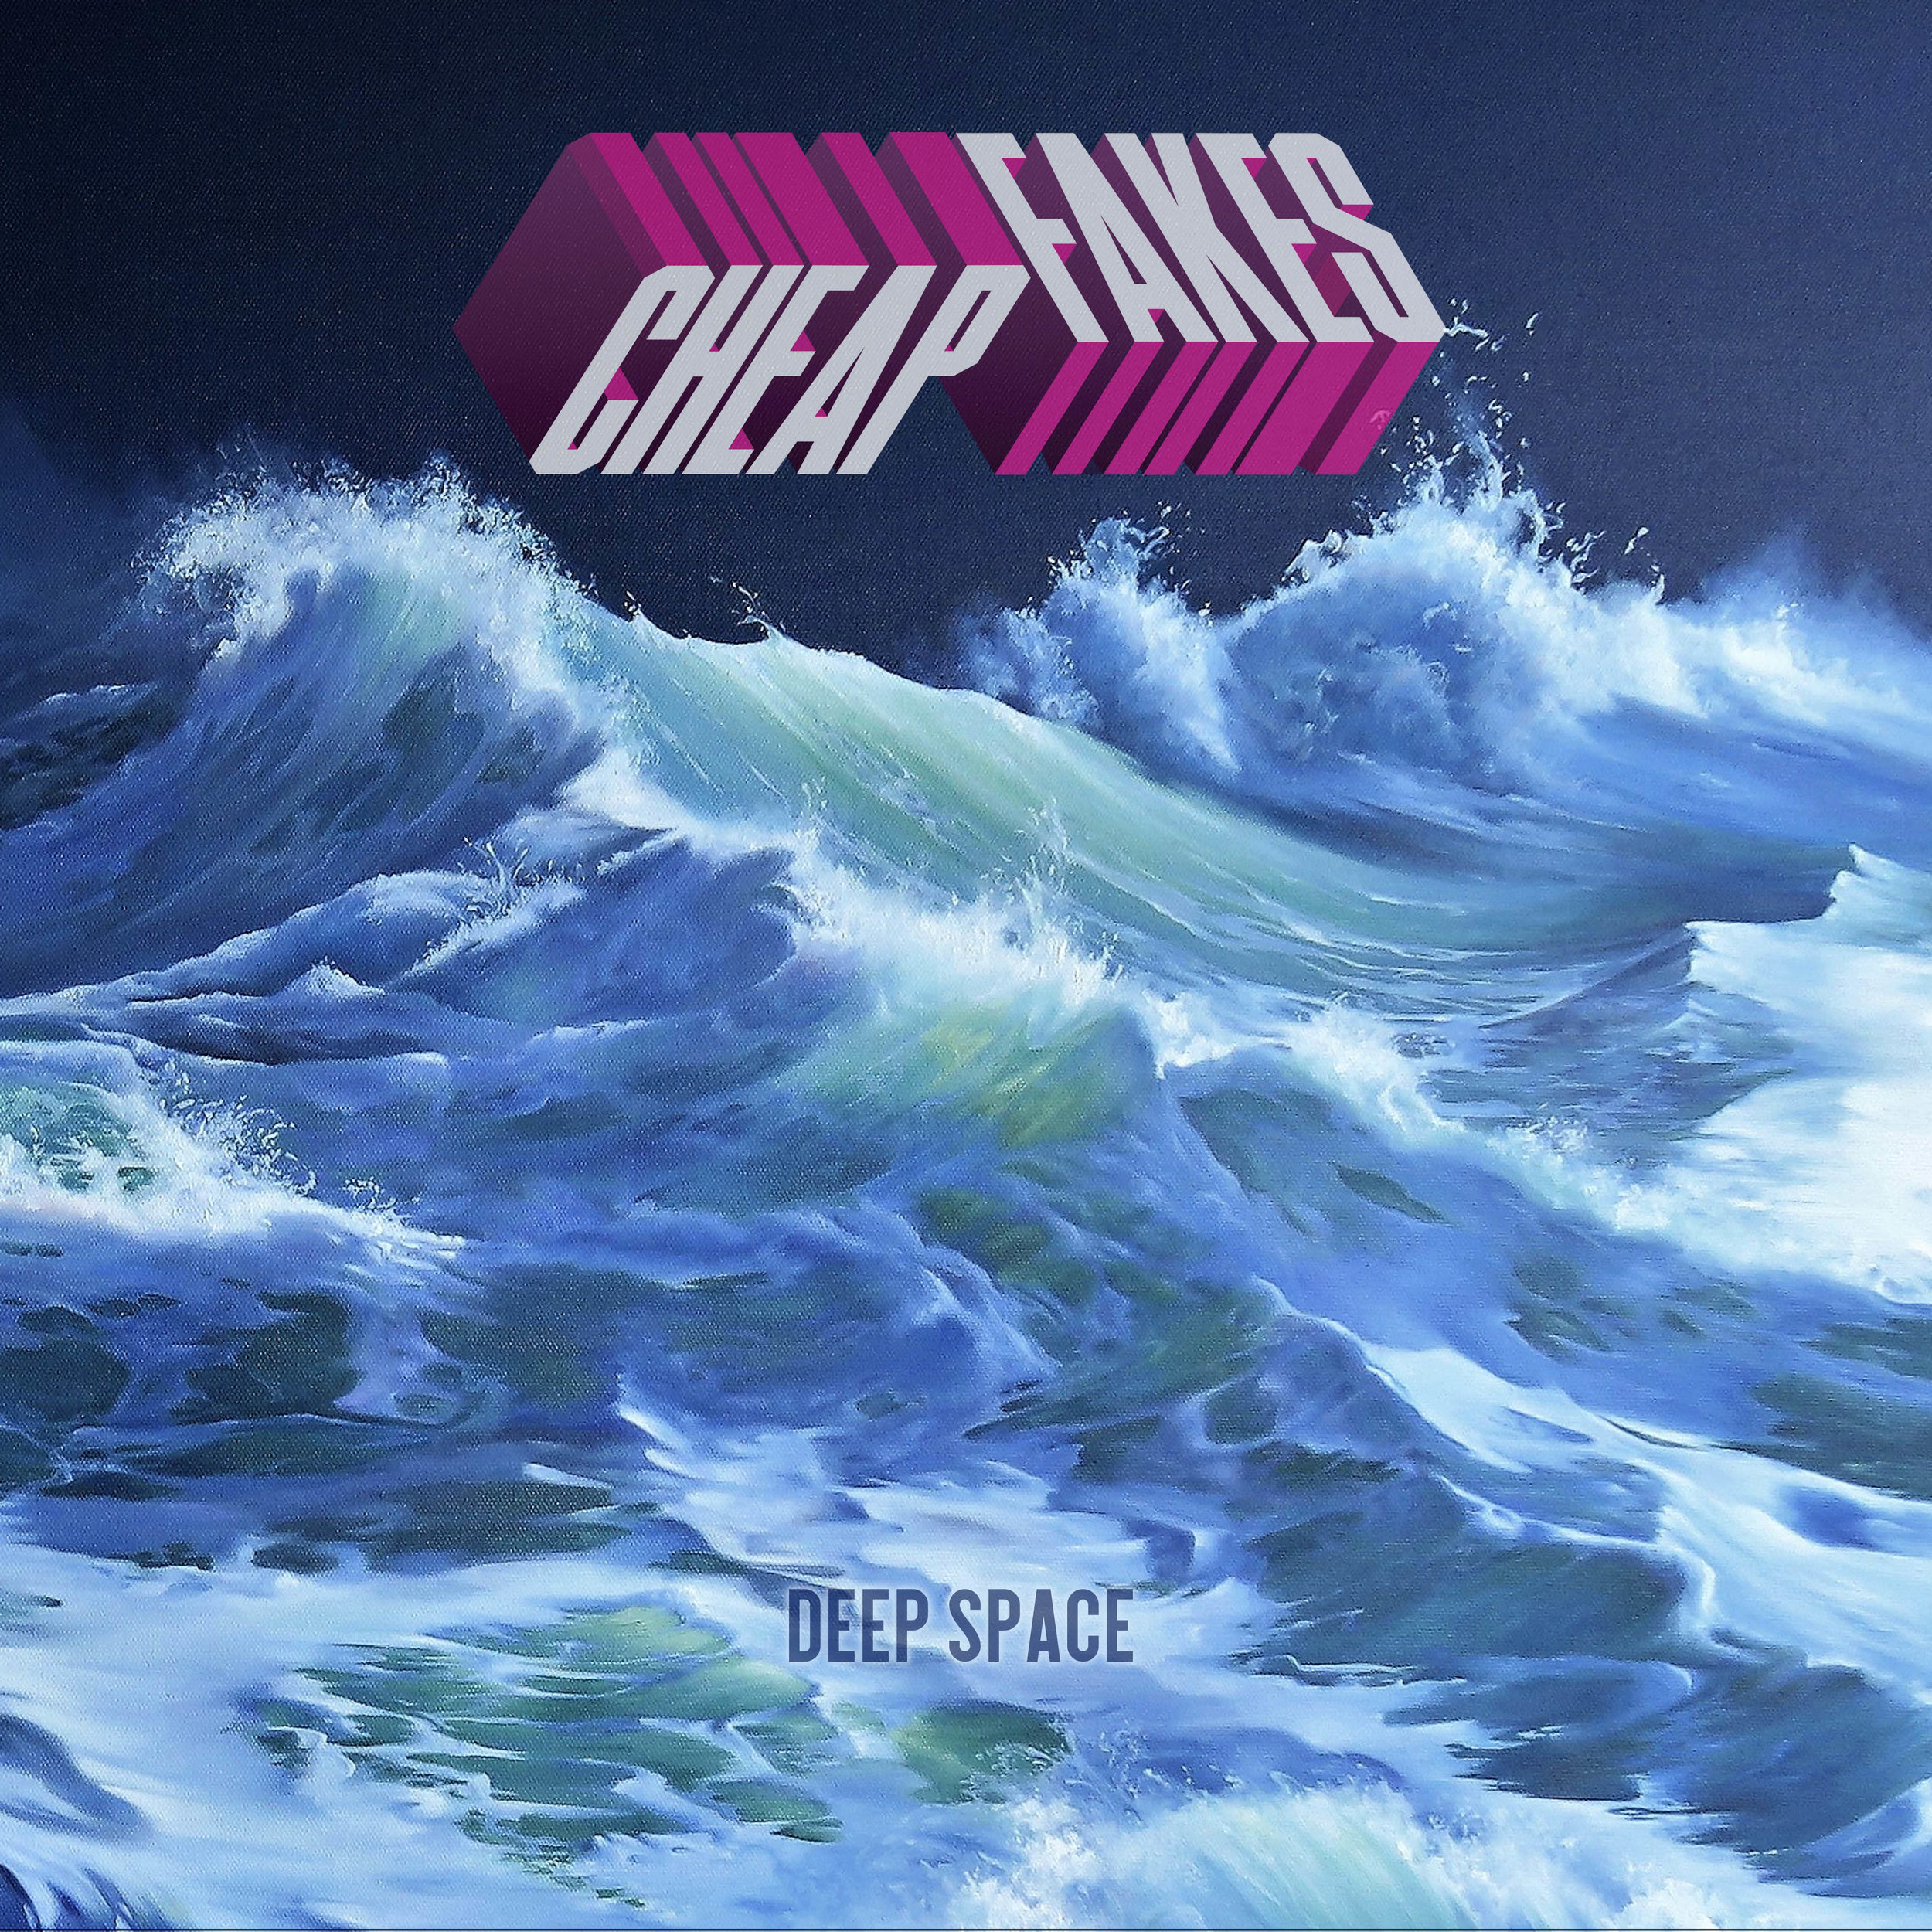 DEEP SPACE - ORDER THE NEWEST CHEAP FAKES ALBUM DEEP SPACE! (2018)Fresh off the press, 12 track CD or Vinyl.Try to define an album that magically weaves seductive brass lines through intricate melodies and infectious grooves. Infuse that with elements of Ska, Funk and something that can only be described as late-night Cactus-Jazz. Throw in some Latino and Americano zest. Then, to complete the album, give it a psychedelic squeeze before pouring it into a 12 track vinyl pressing. Cheap Fakes have created an authentic and sophisticated sound with their new album Deep Space. The album challenges listeners to engage in its complexity and diversity, the audience growing alongside the ever evolving band. The album will purposefully punch you in the chest, tear at your heart, fill it with tears of aural joy and then throw you into Deep Space.